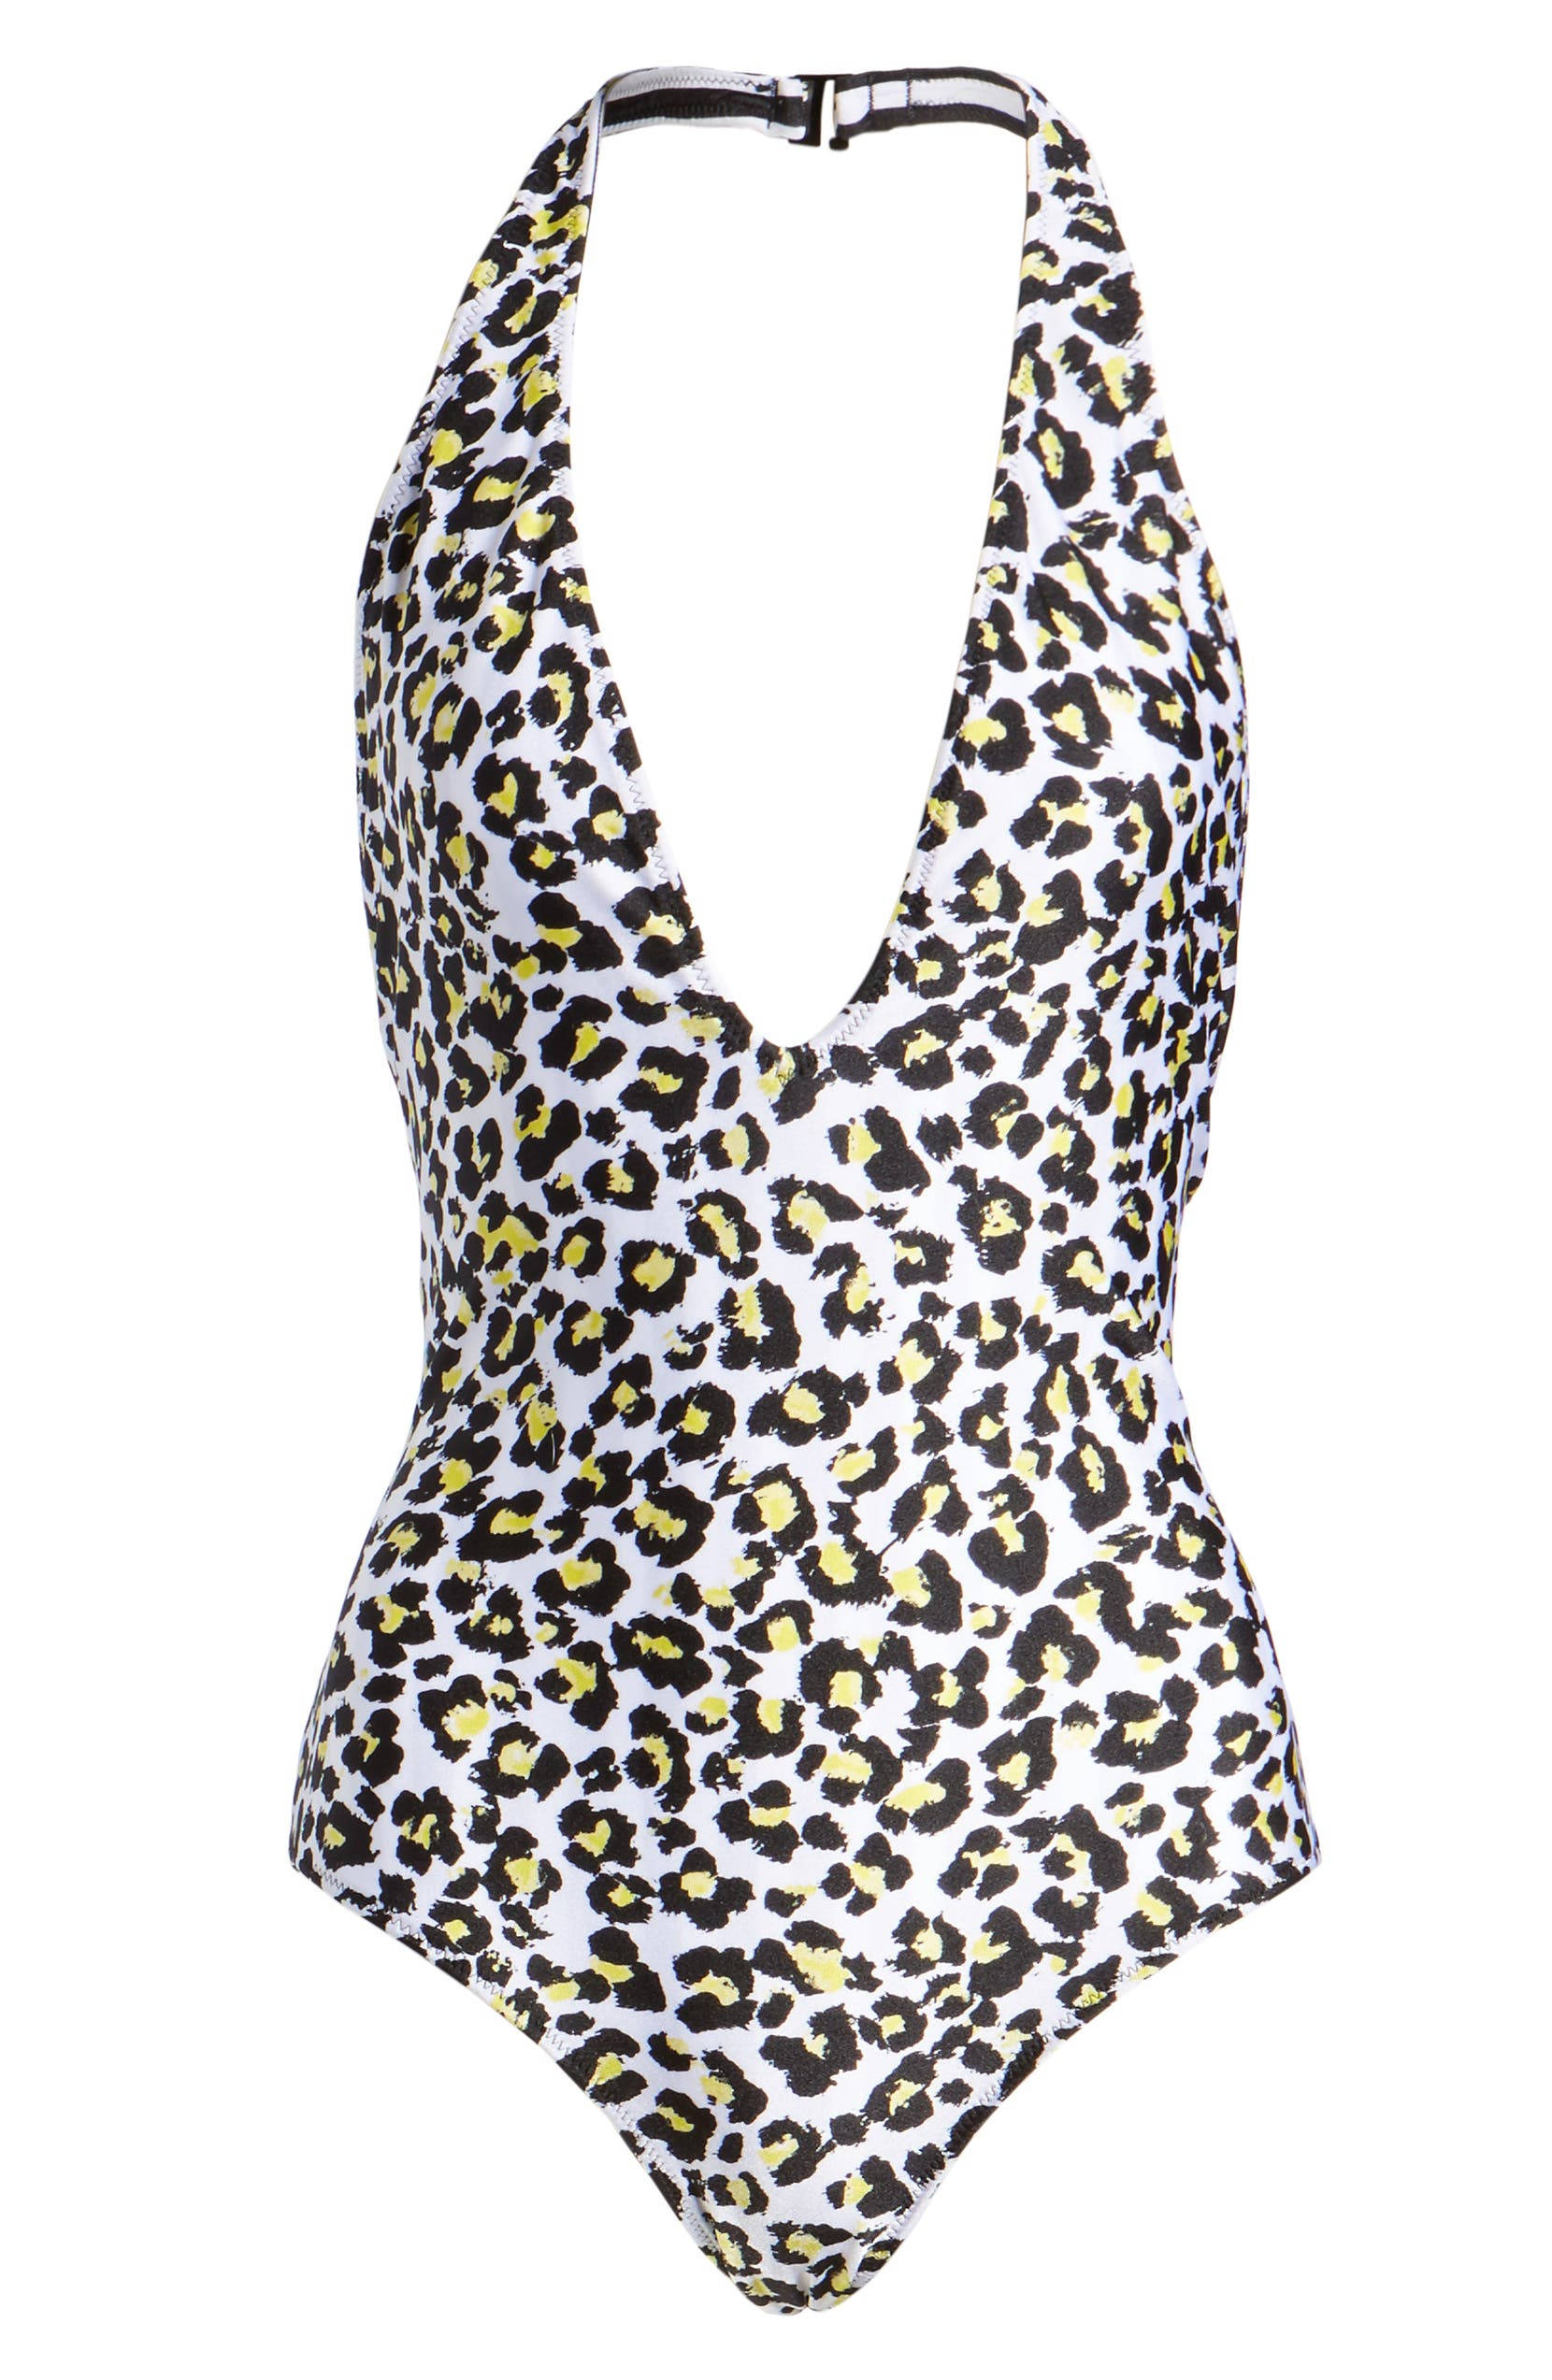 f04acf5489 Volcom Seeing Spots Reversible One-Piece Swimsuit